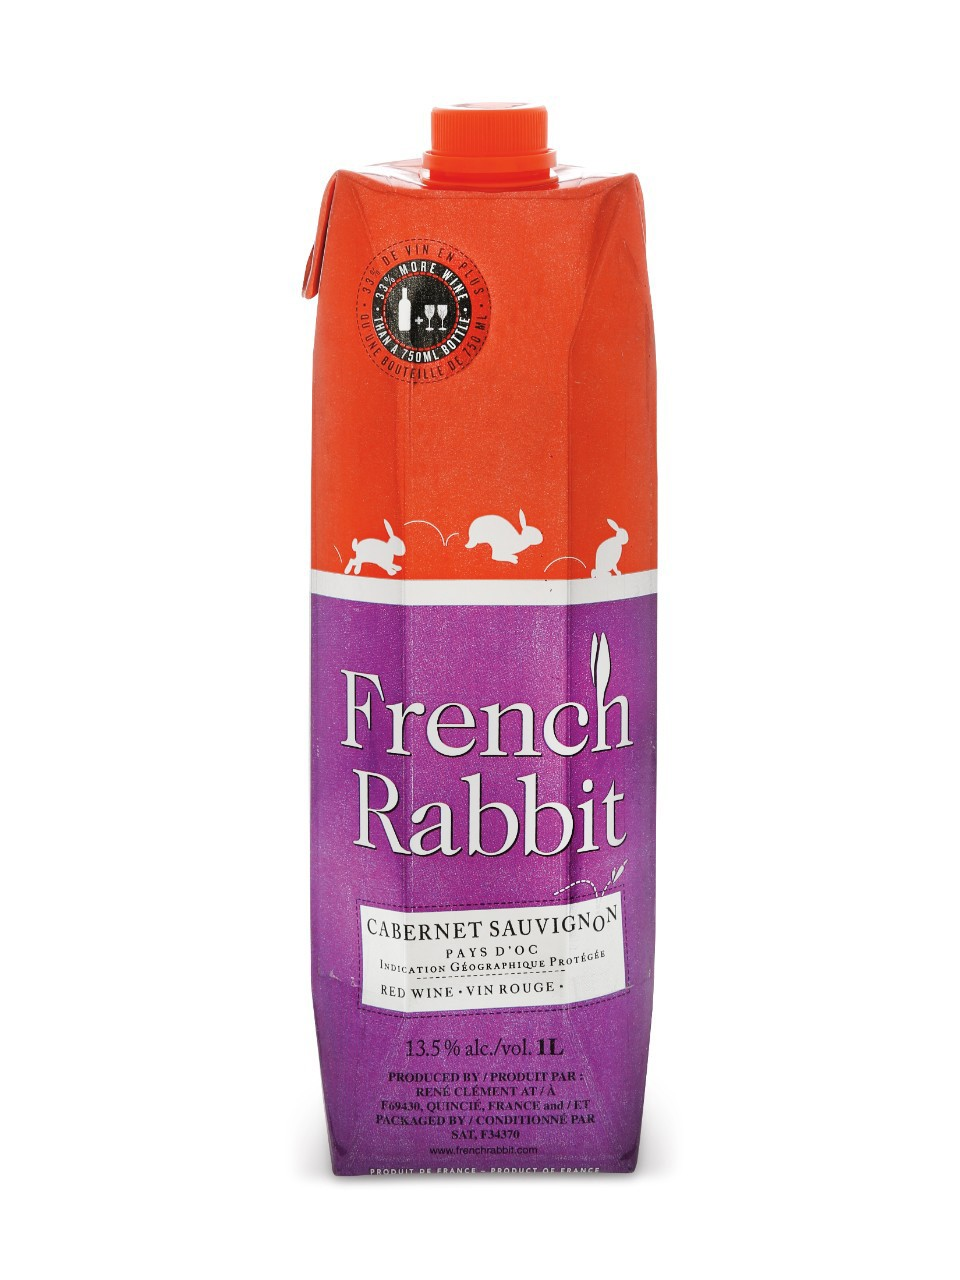 French Rabbit Cabernet Sauvignon Pays D'OC